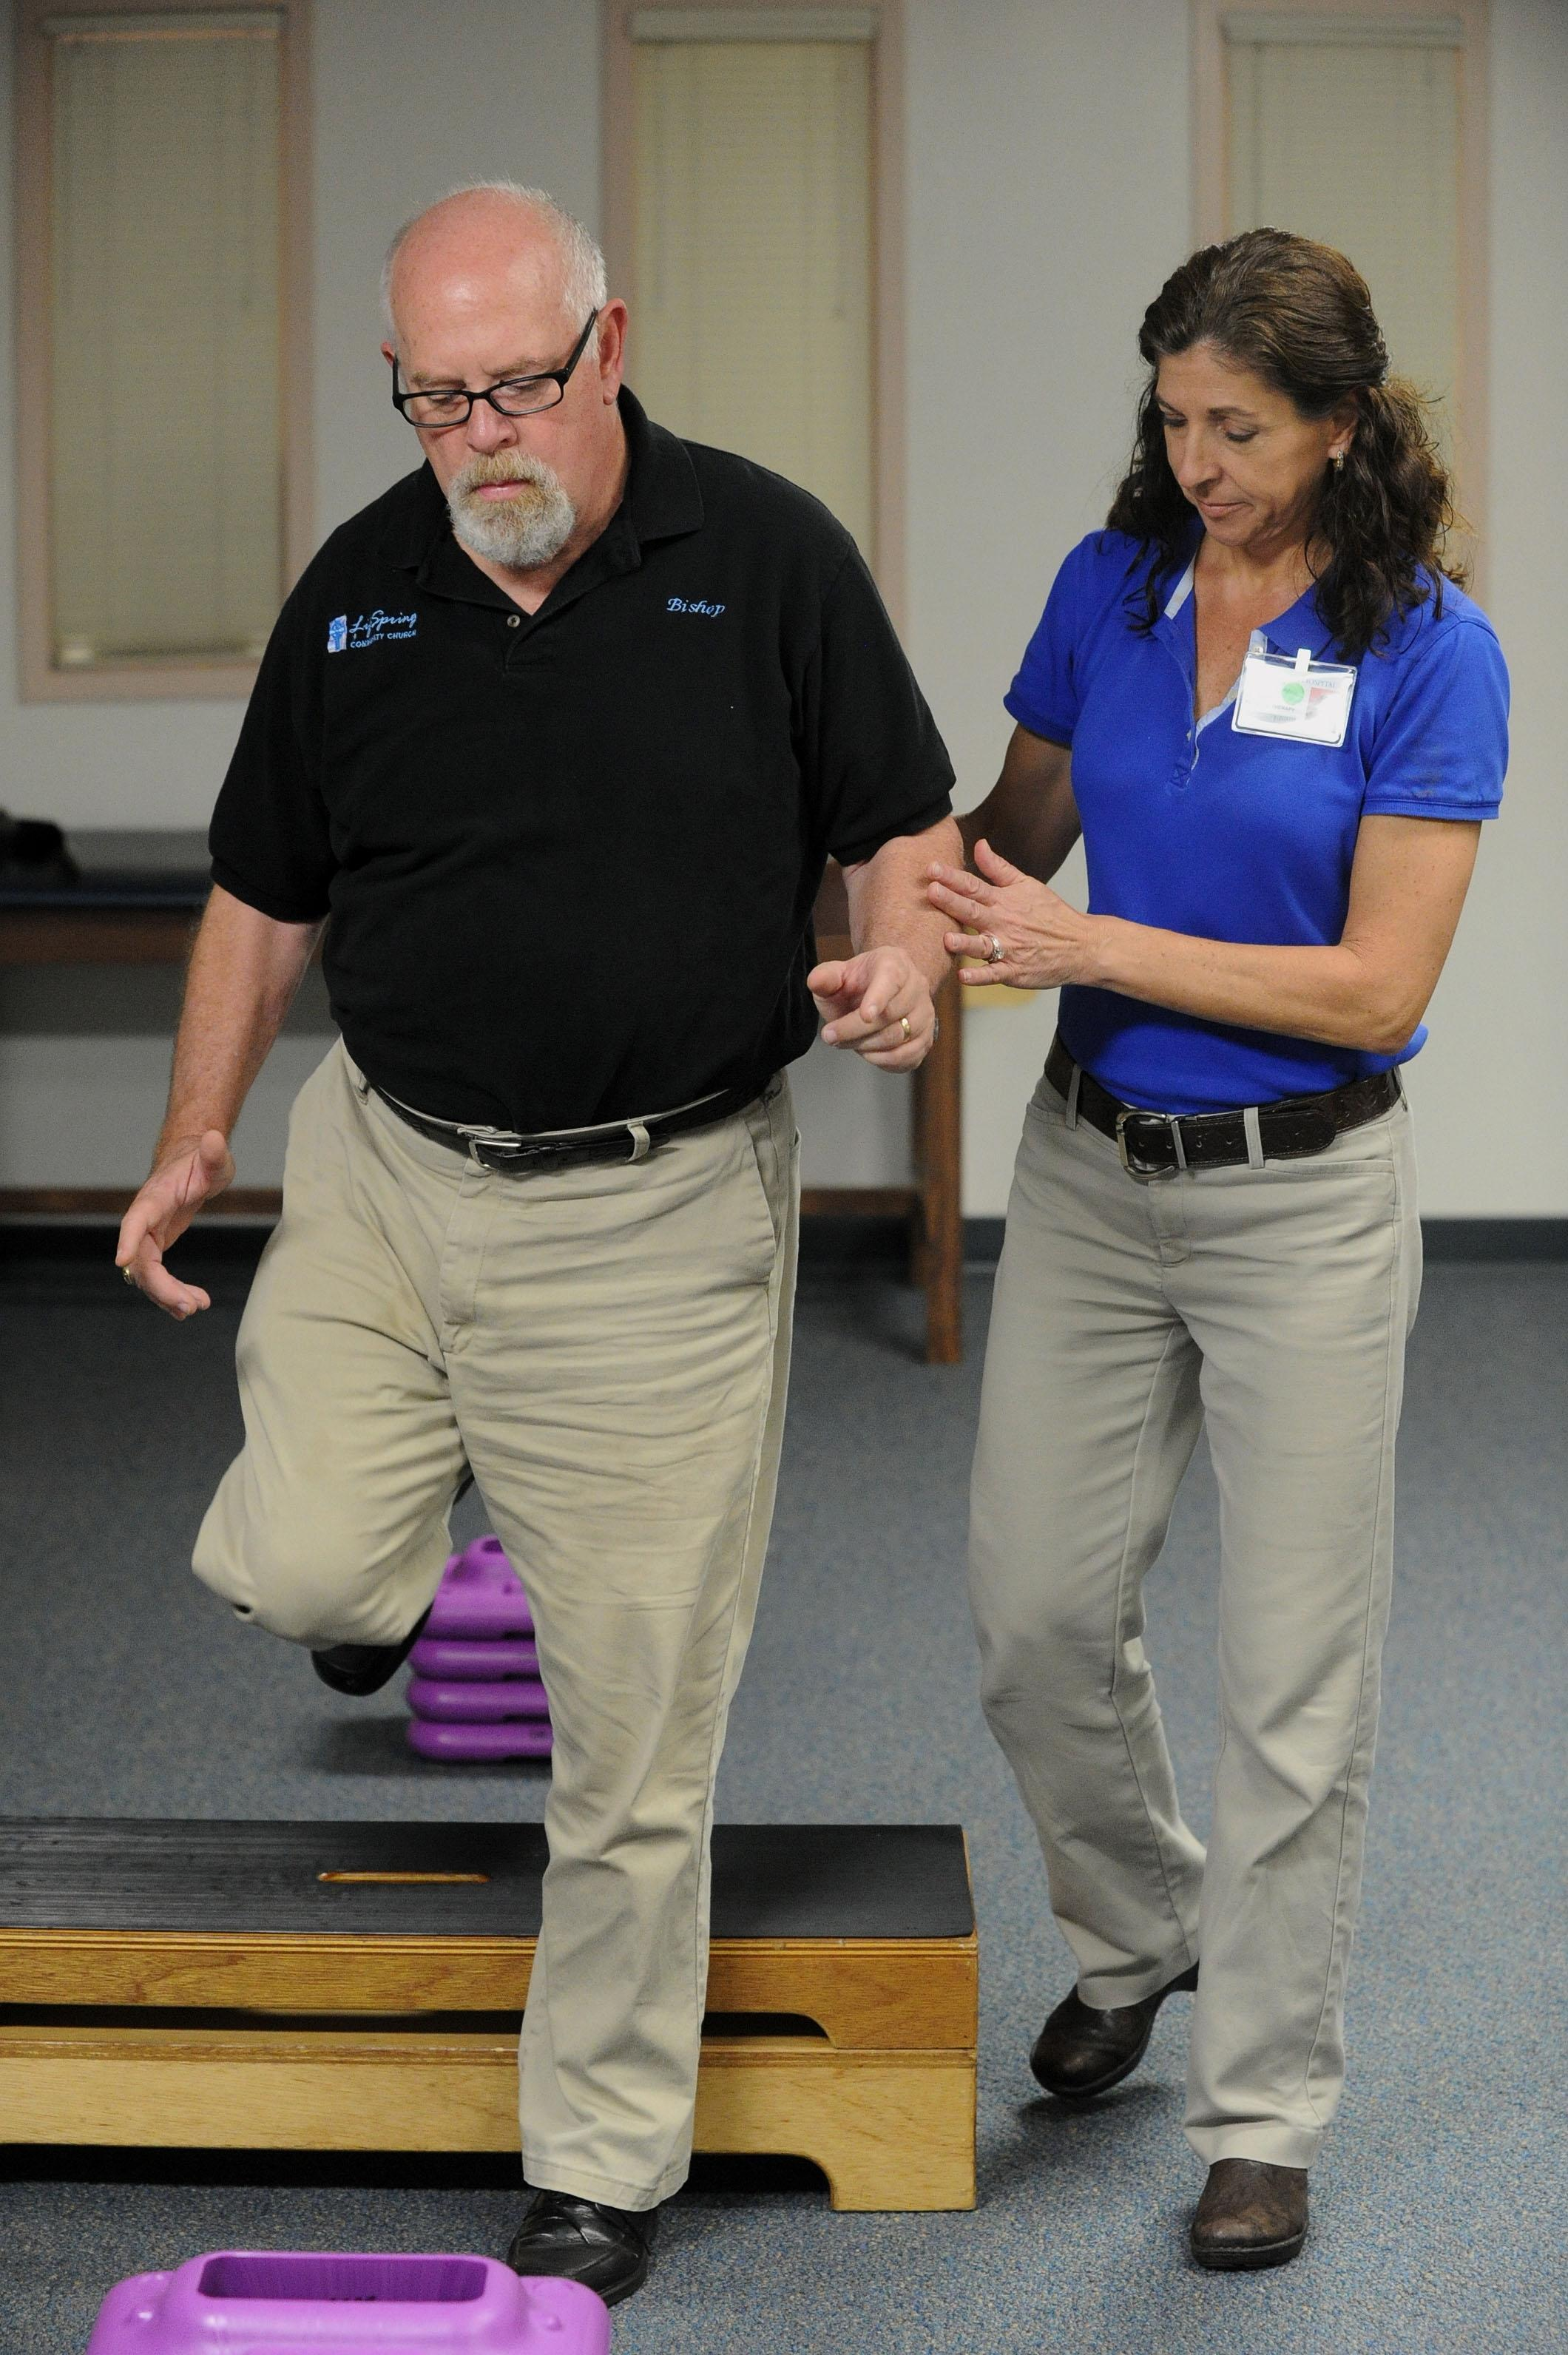 Balance exercise physical therapy -  Physical Therapist Margie Moore Works With Bruce Wright A Patient Living With Parkinson S Disease View Slideshow 1 Of 2